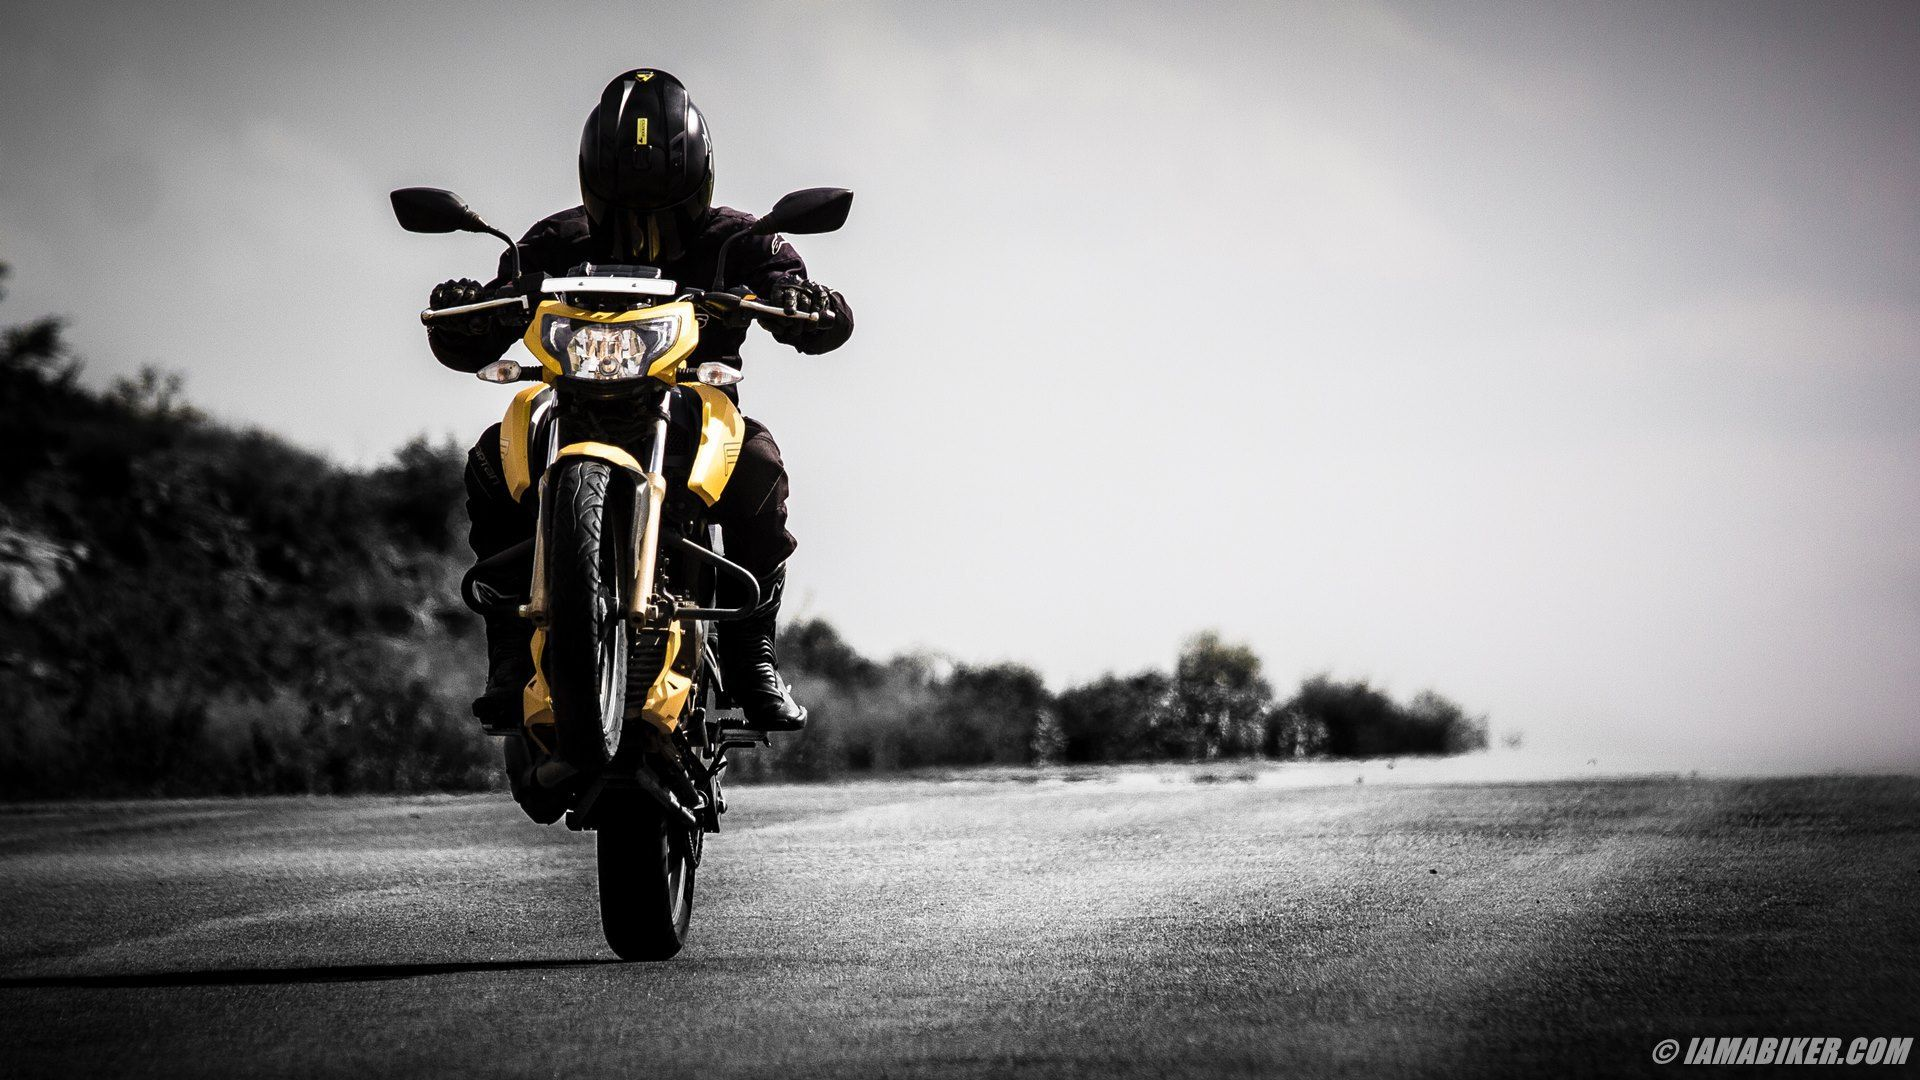 Apache Rtr 200 Hd Wallpapers Rtr Apache Motorcycle News